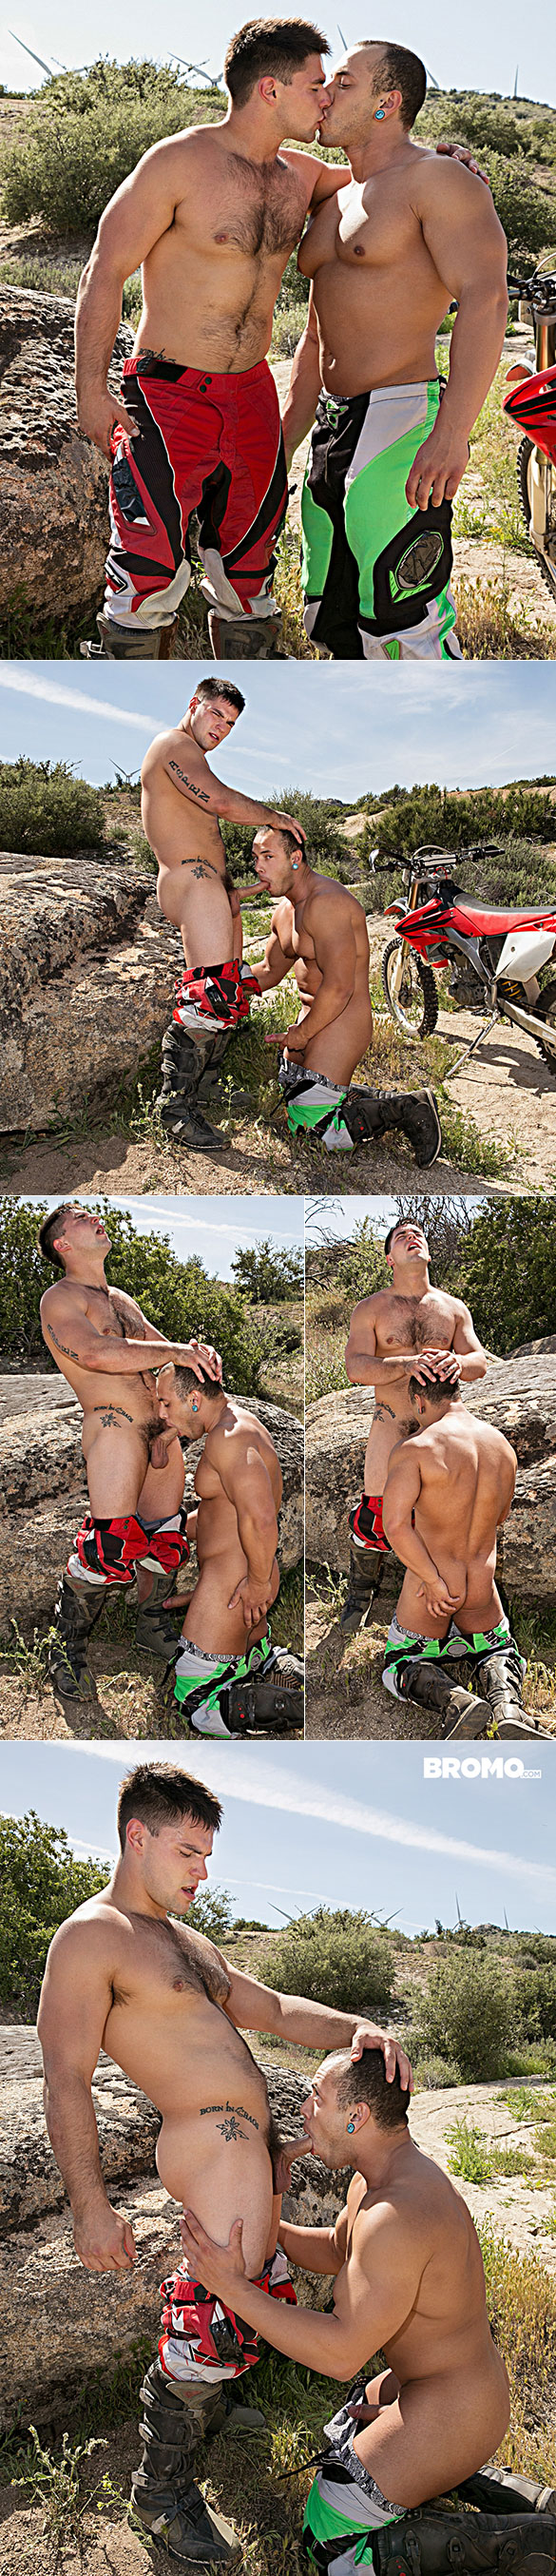 """Bromo: Leon Lewis gets pounded raw by Aspen in """"Dirty Rider, Part 2"""""""